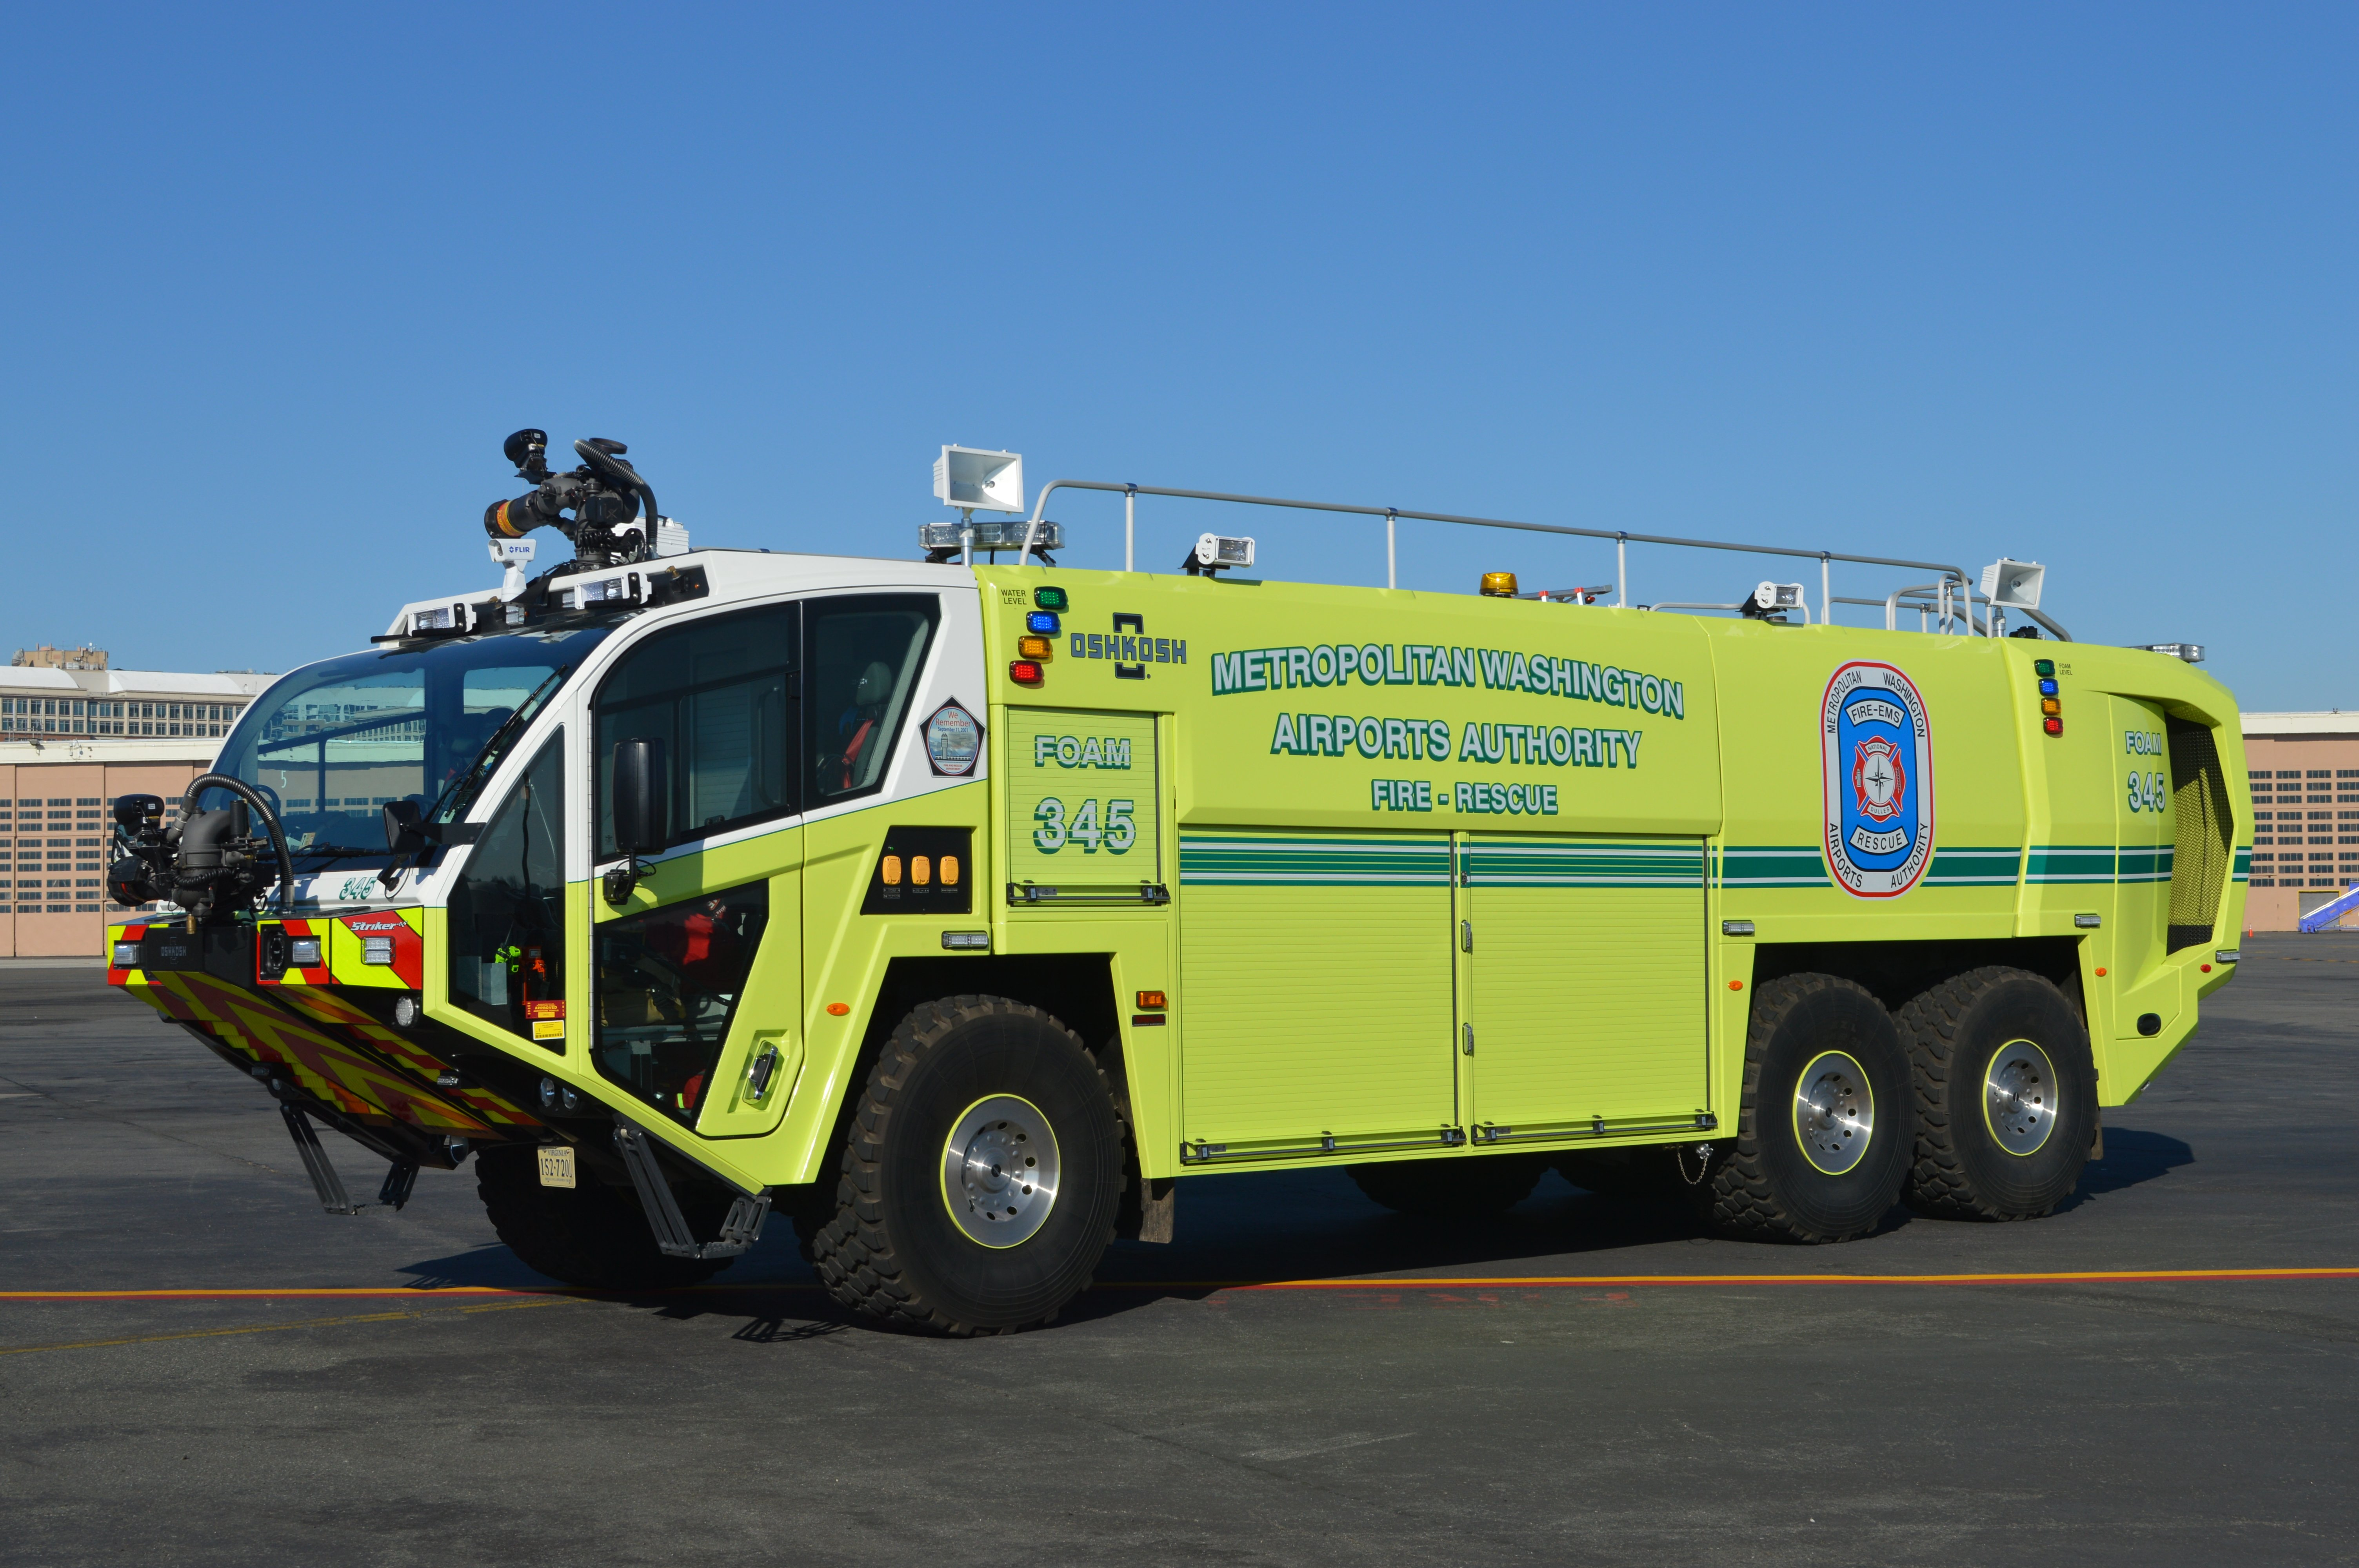 Aircraft Rescue Fire Fighting Vehicles – Mike Wilbur